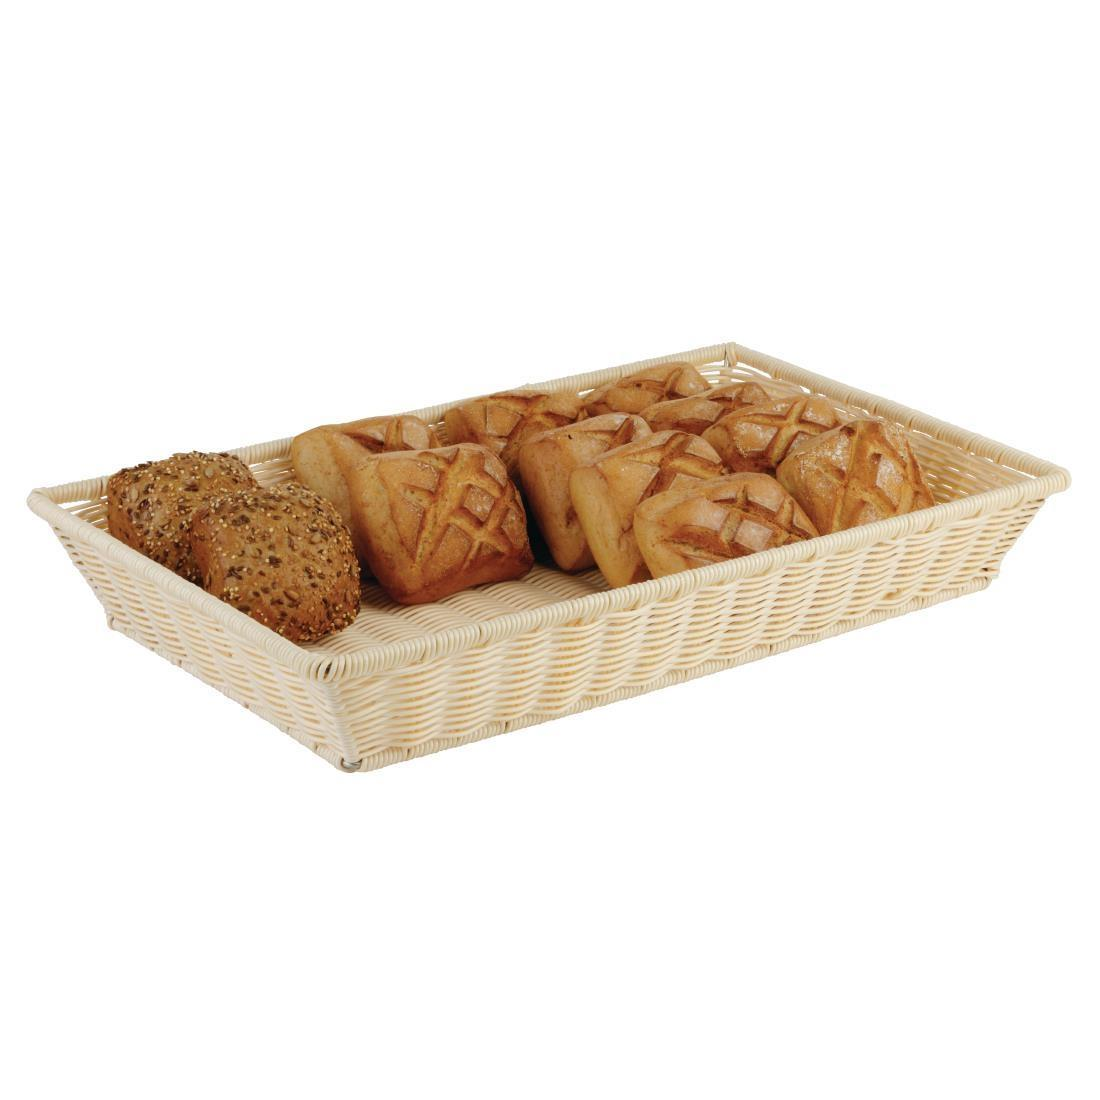 APS Polypropylene Rattan Display Basket 300 x 220mm - Each - CK354